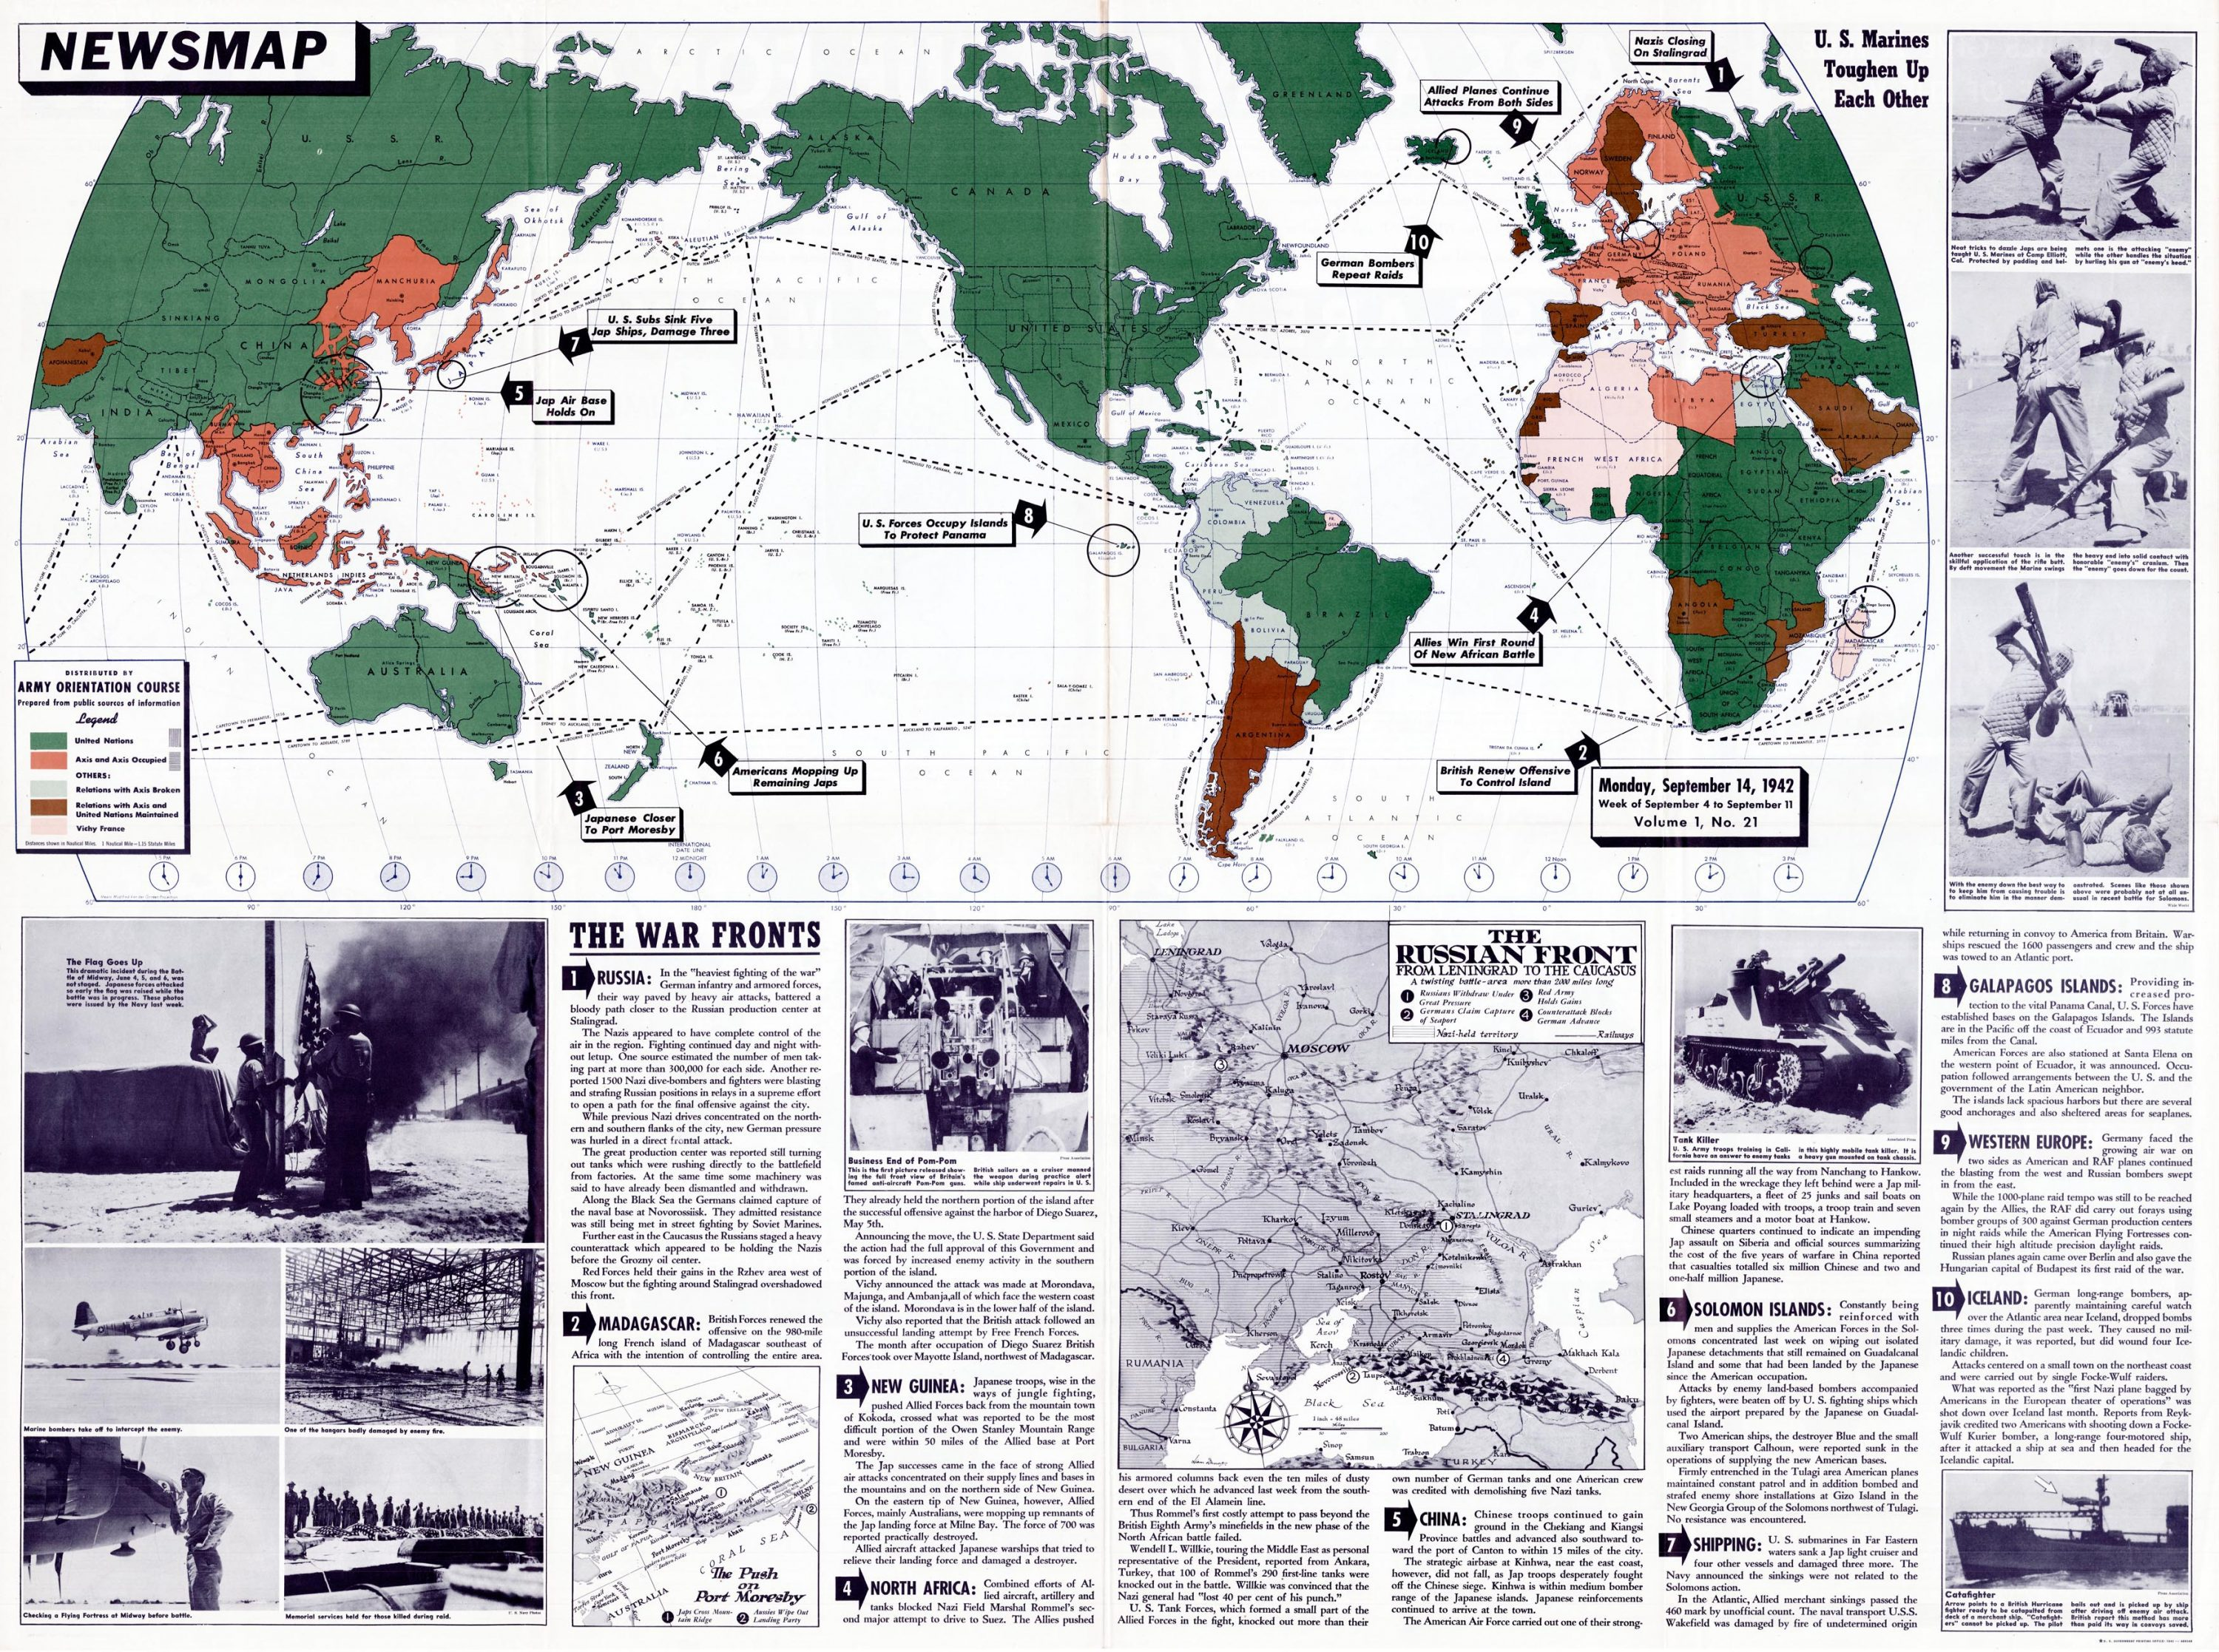 A Second World War Newsmap Commenting On The Veracity Of